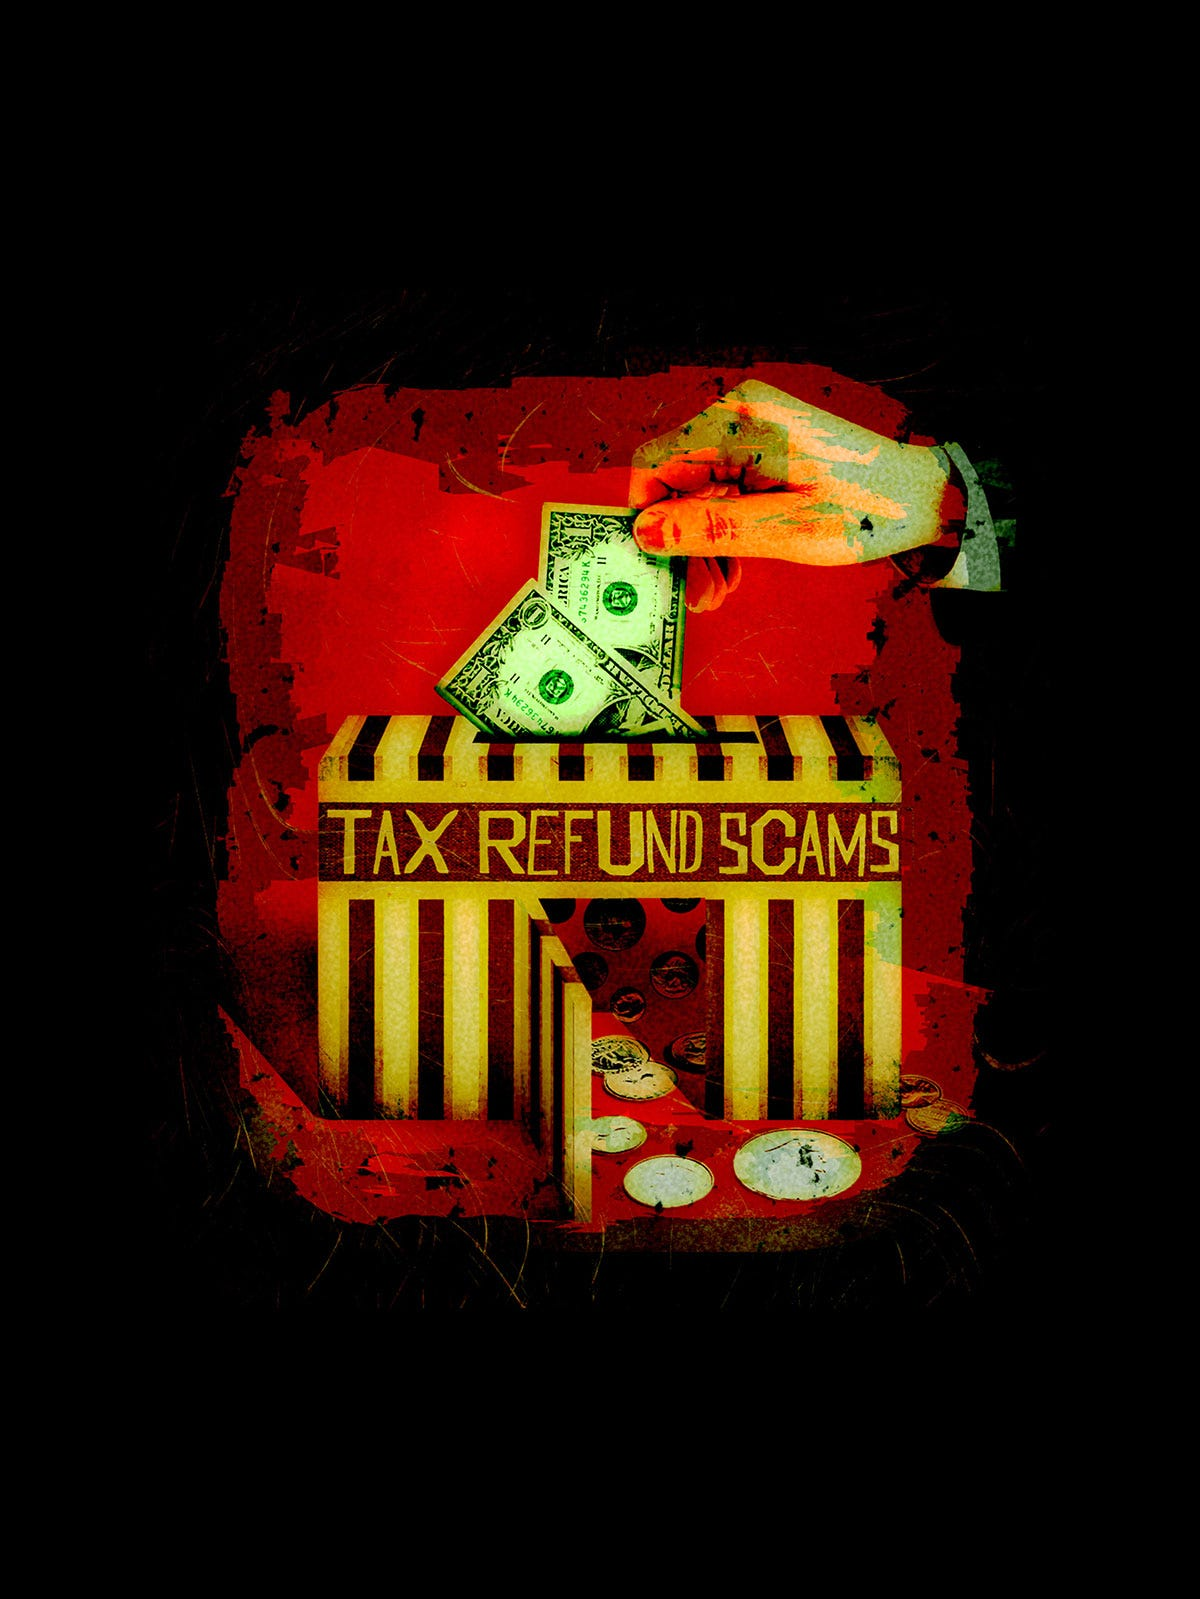 Don't give fraudsters a hand filing a fake tax return